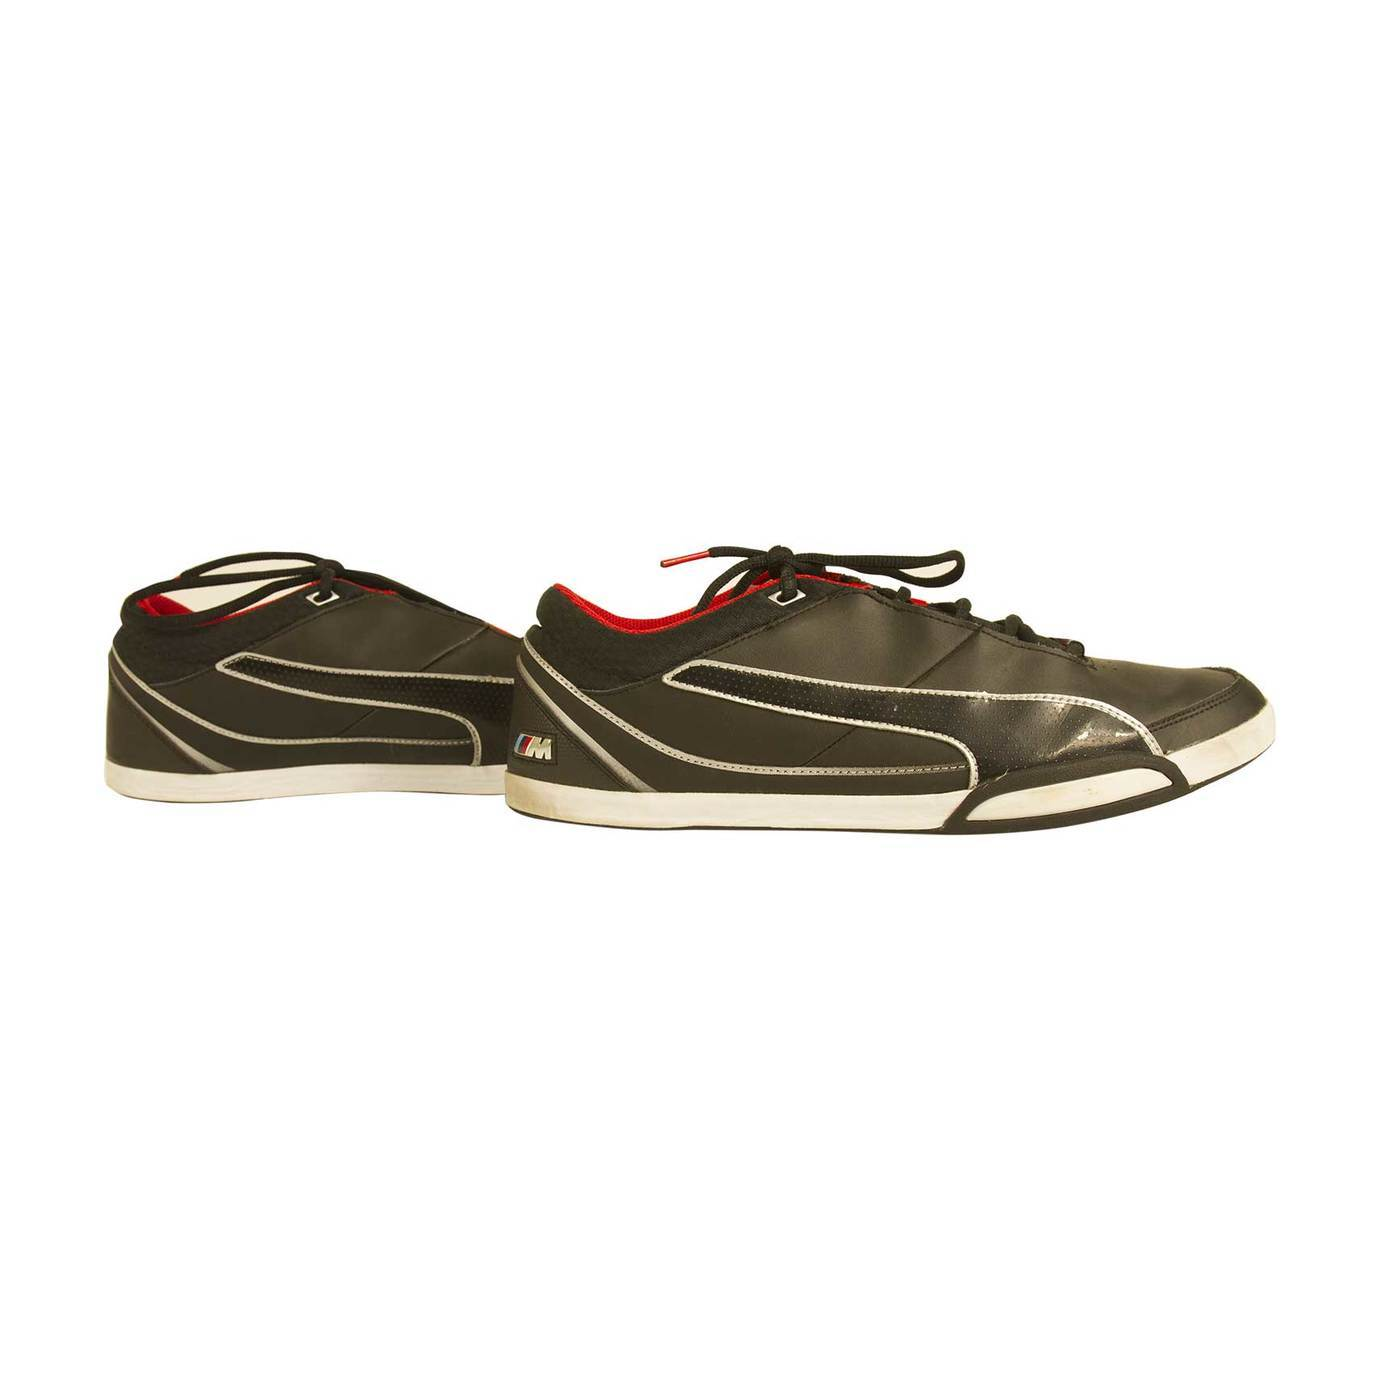 Puma BMW M series Black leather Shoes Sneakers Trainers EU 45 US 11,5 UK 10,5